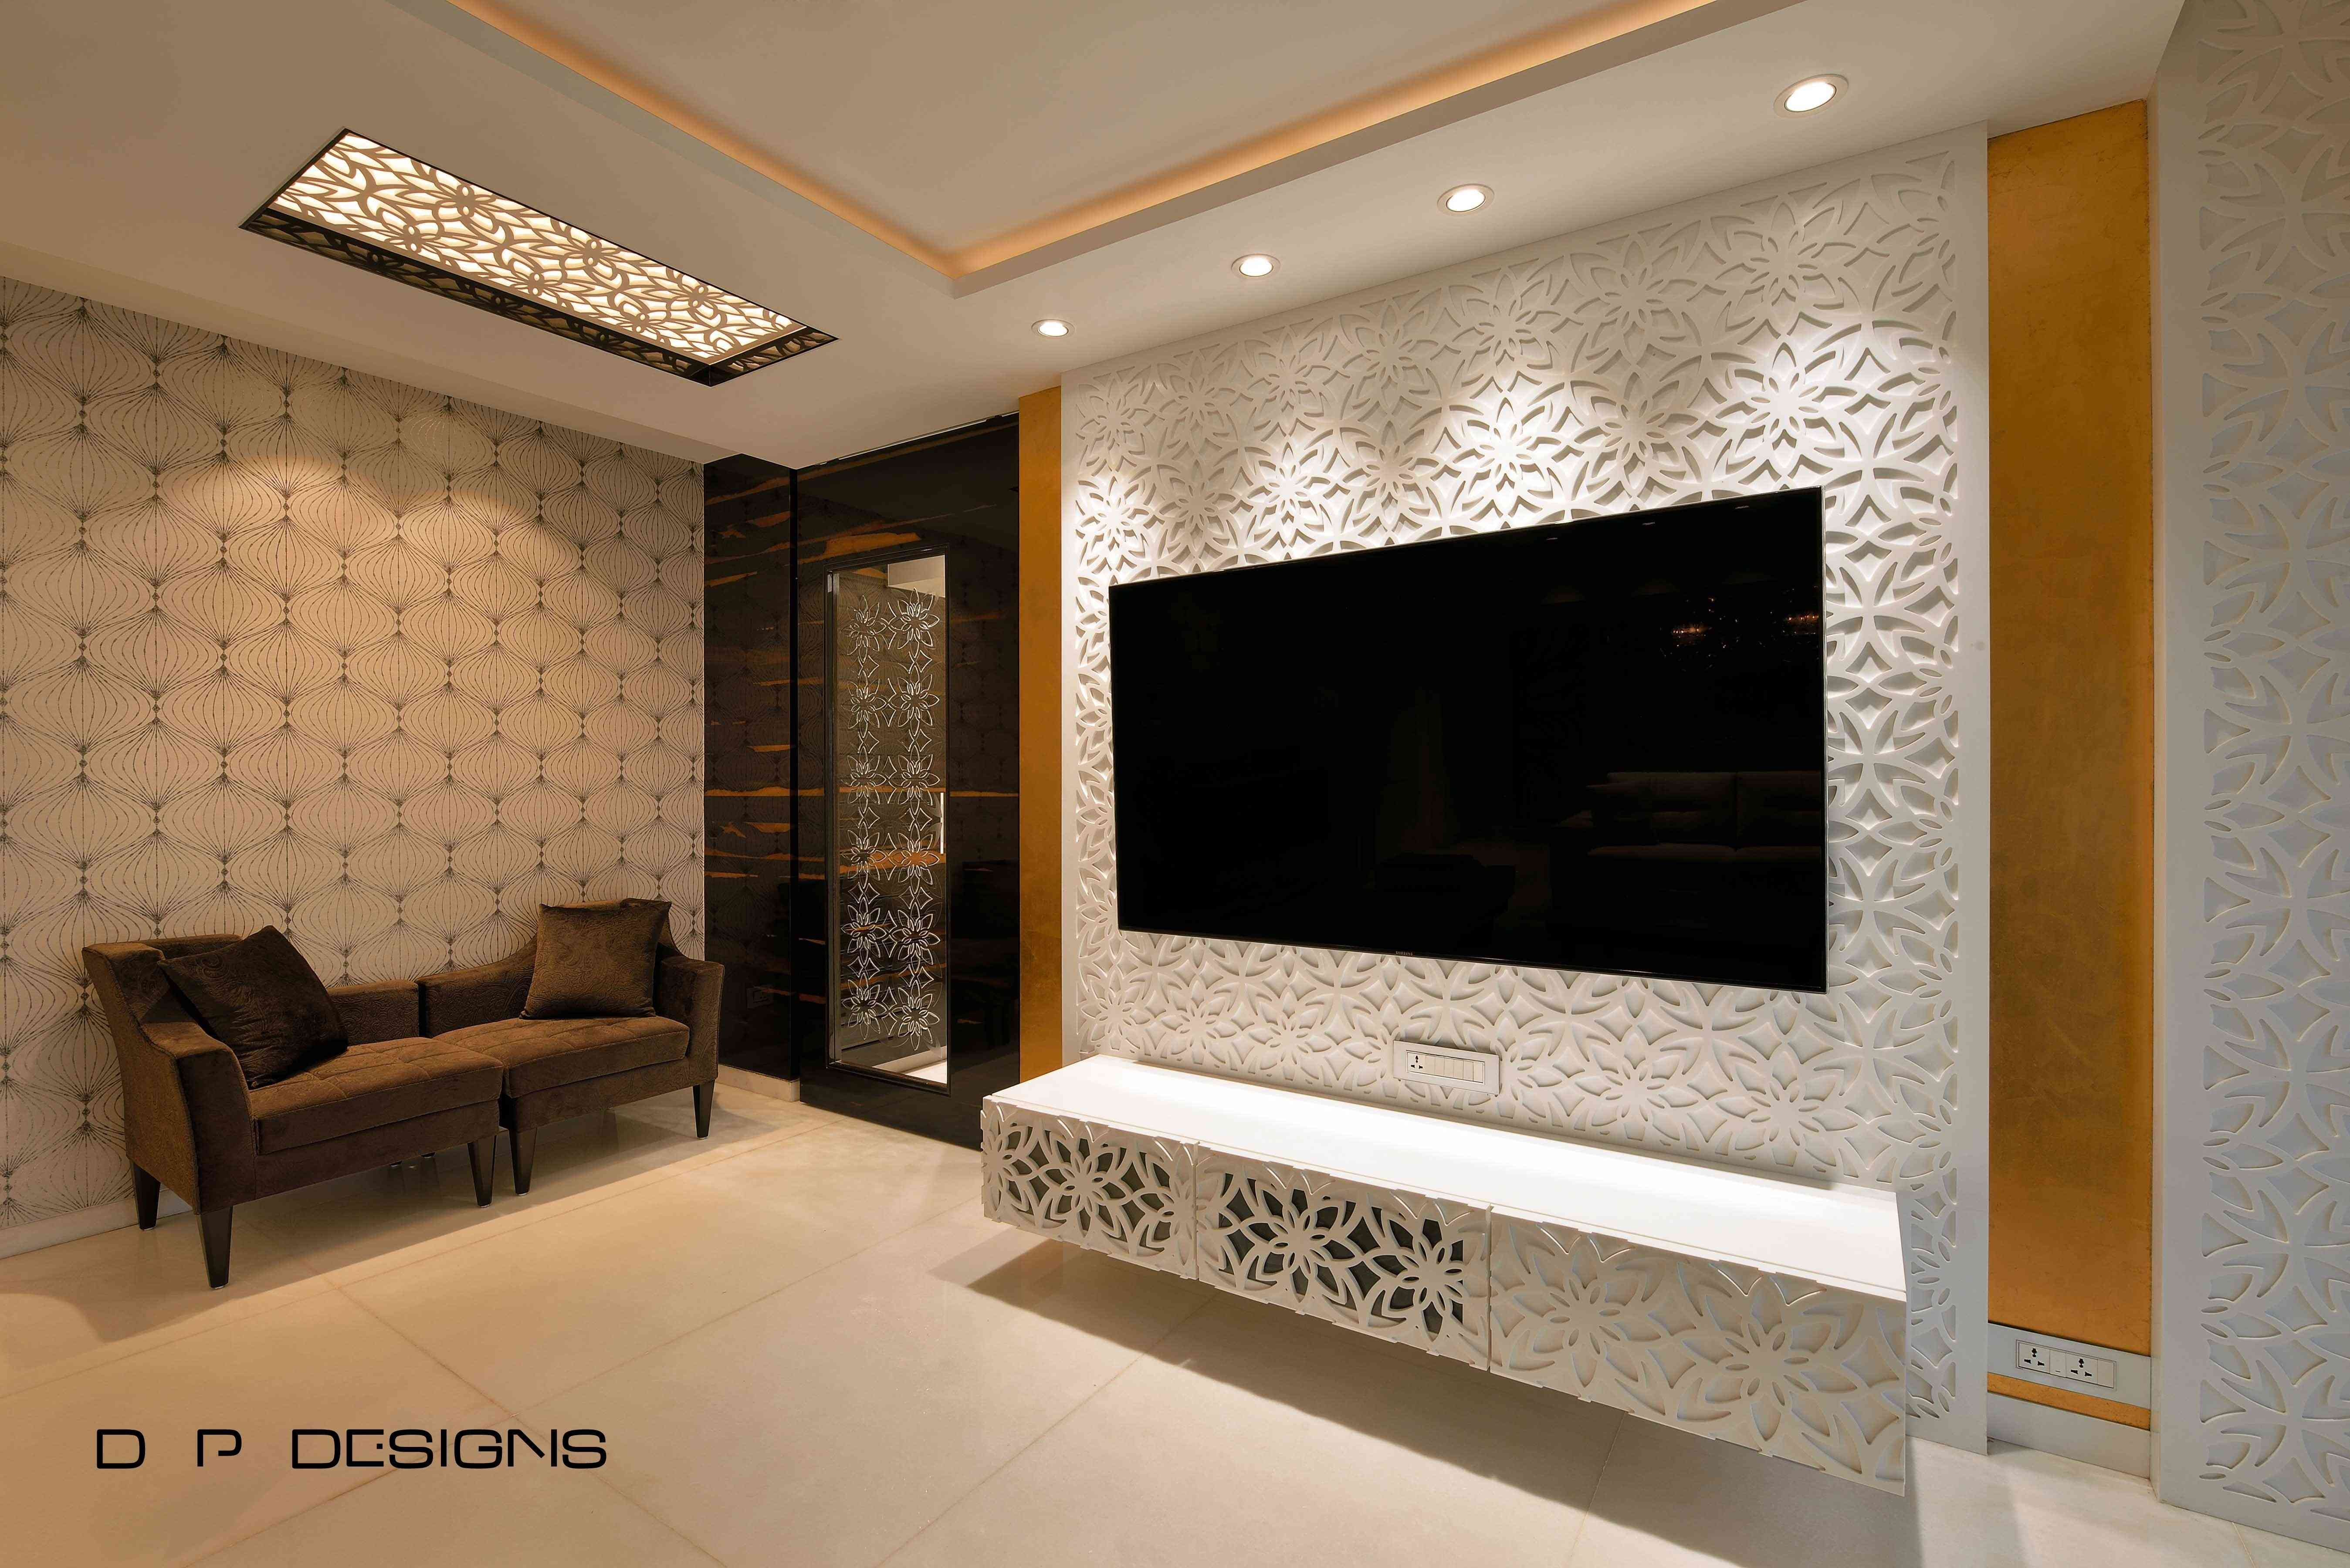 37 Wall Mounted Tv Ideas Interior And Decor For Your Inspirations Modern Tv Wall Units Tv Wall Design Modern Tv Wall